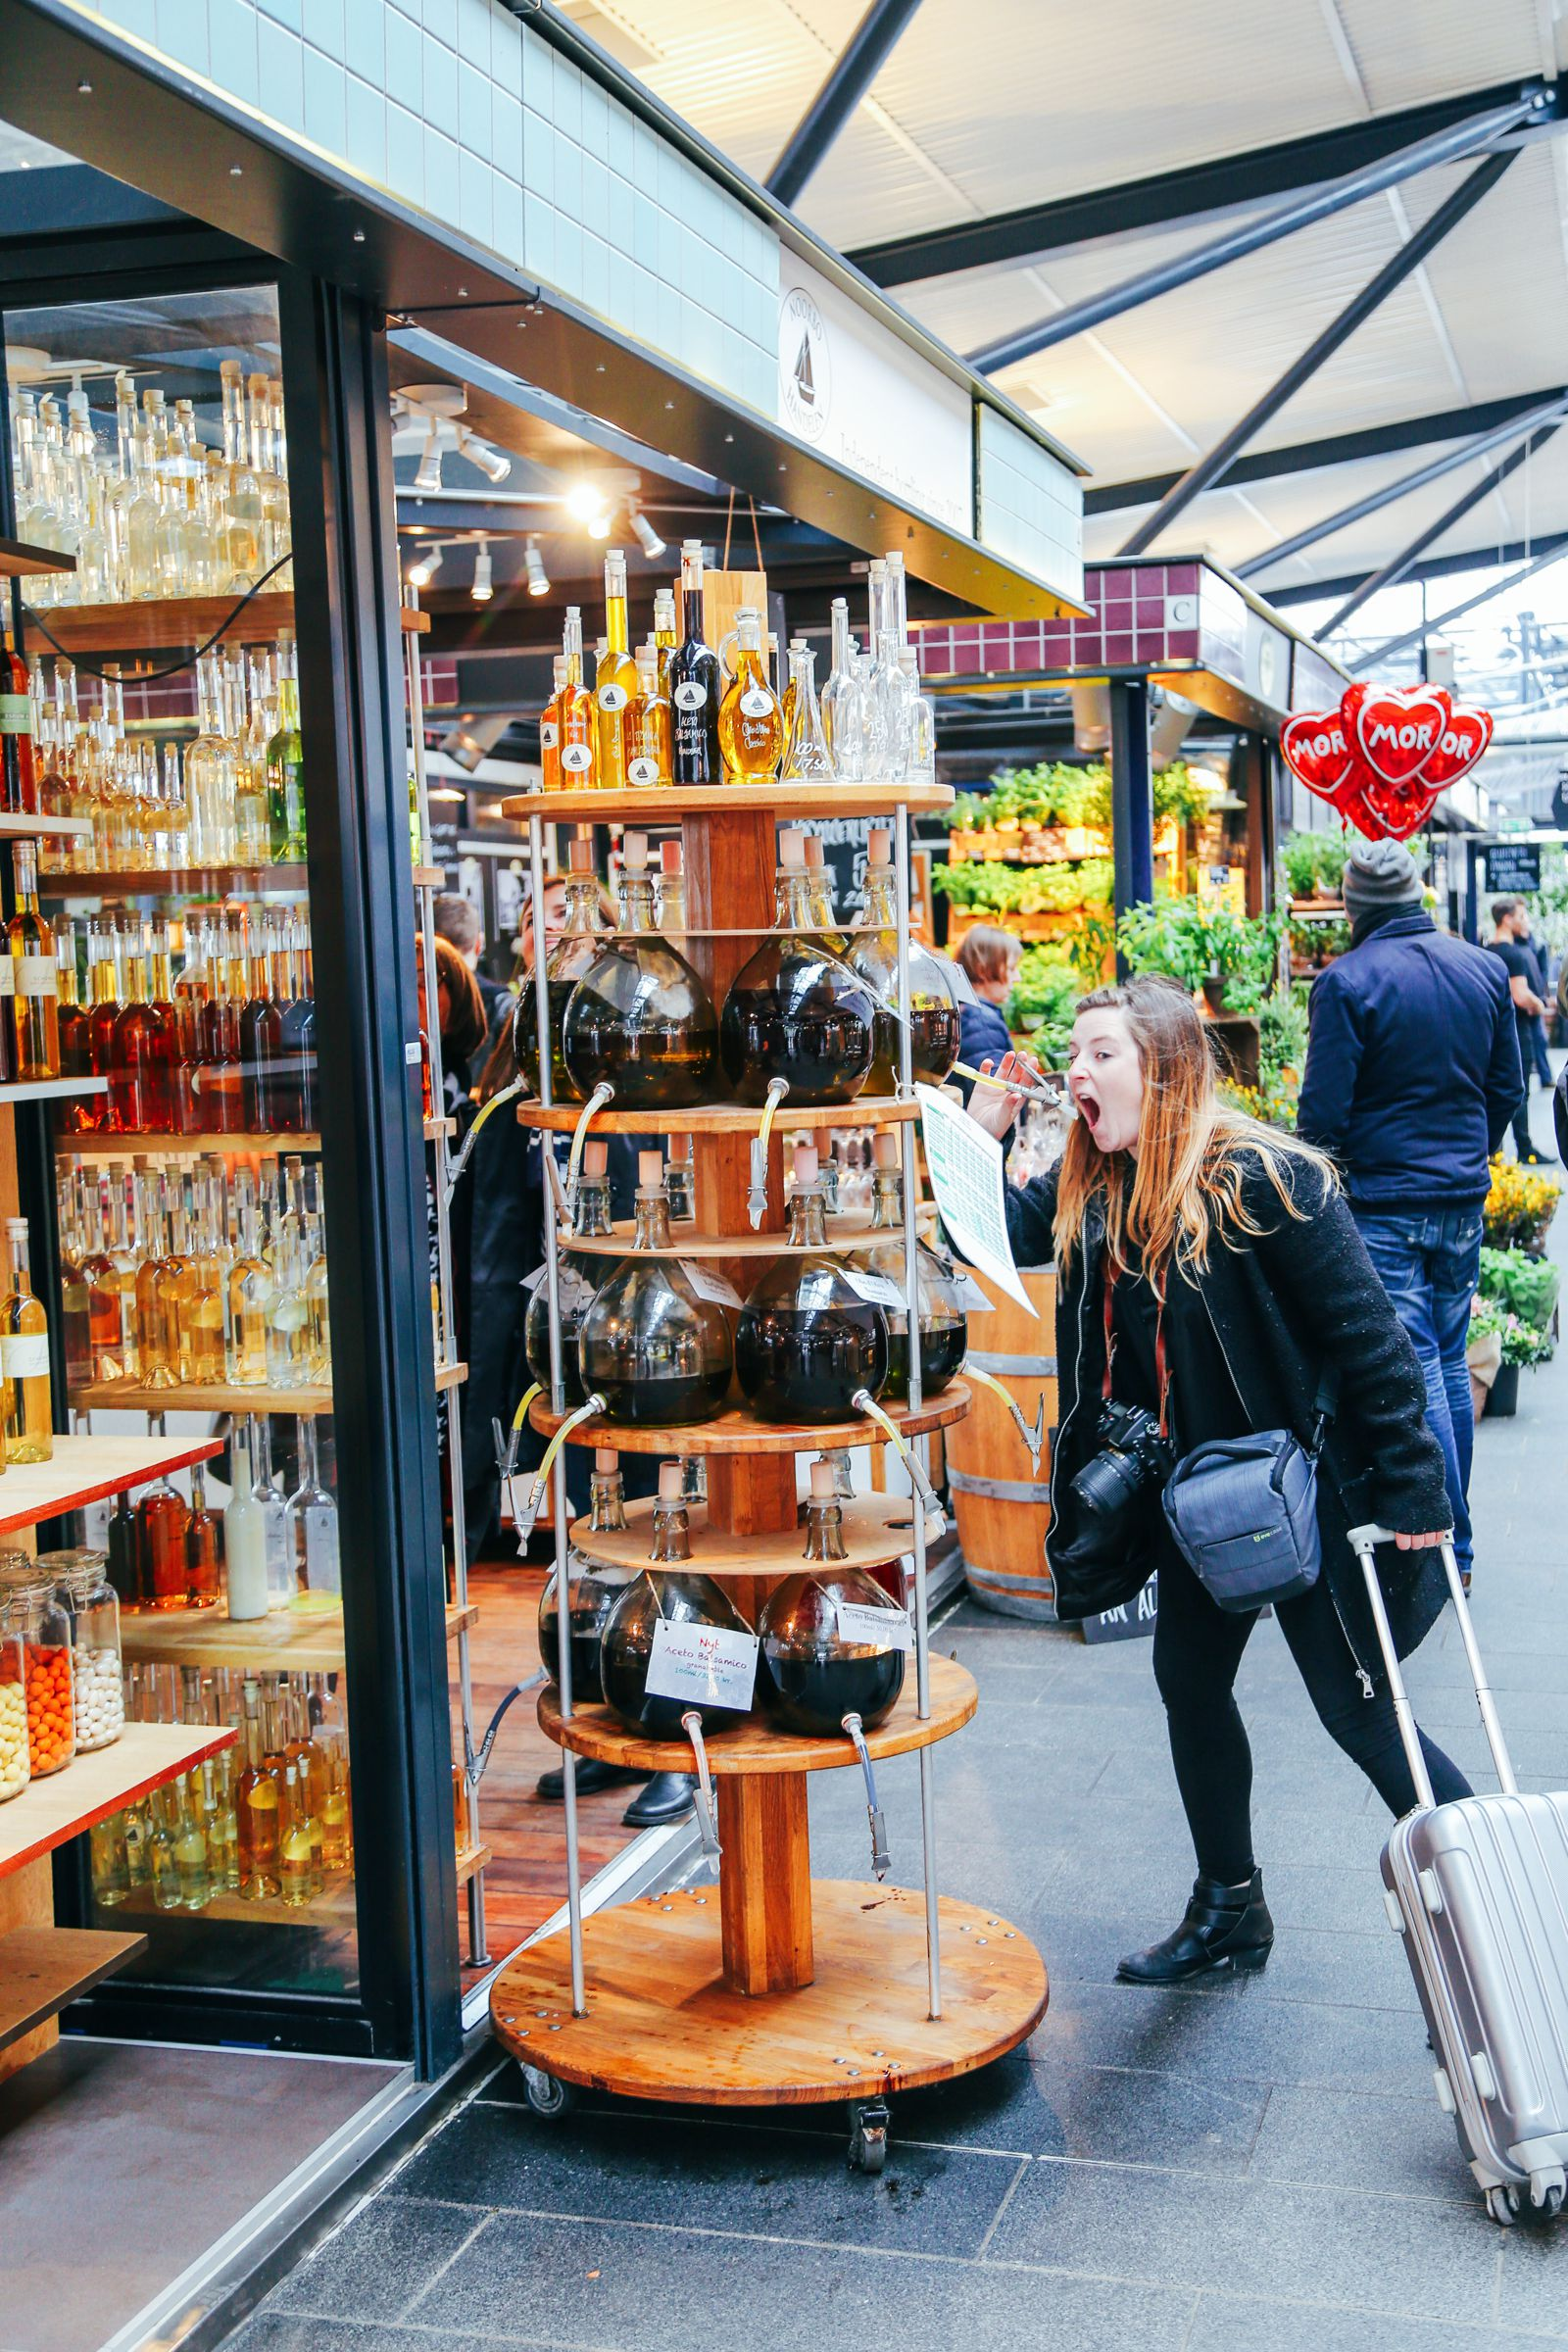 The Complete Guide On All The Things To See, Eat And Do In Copenhagen, Denmark (31)